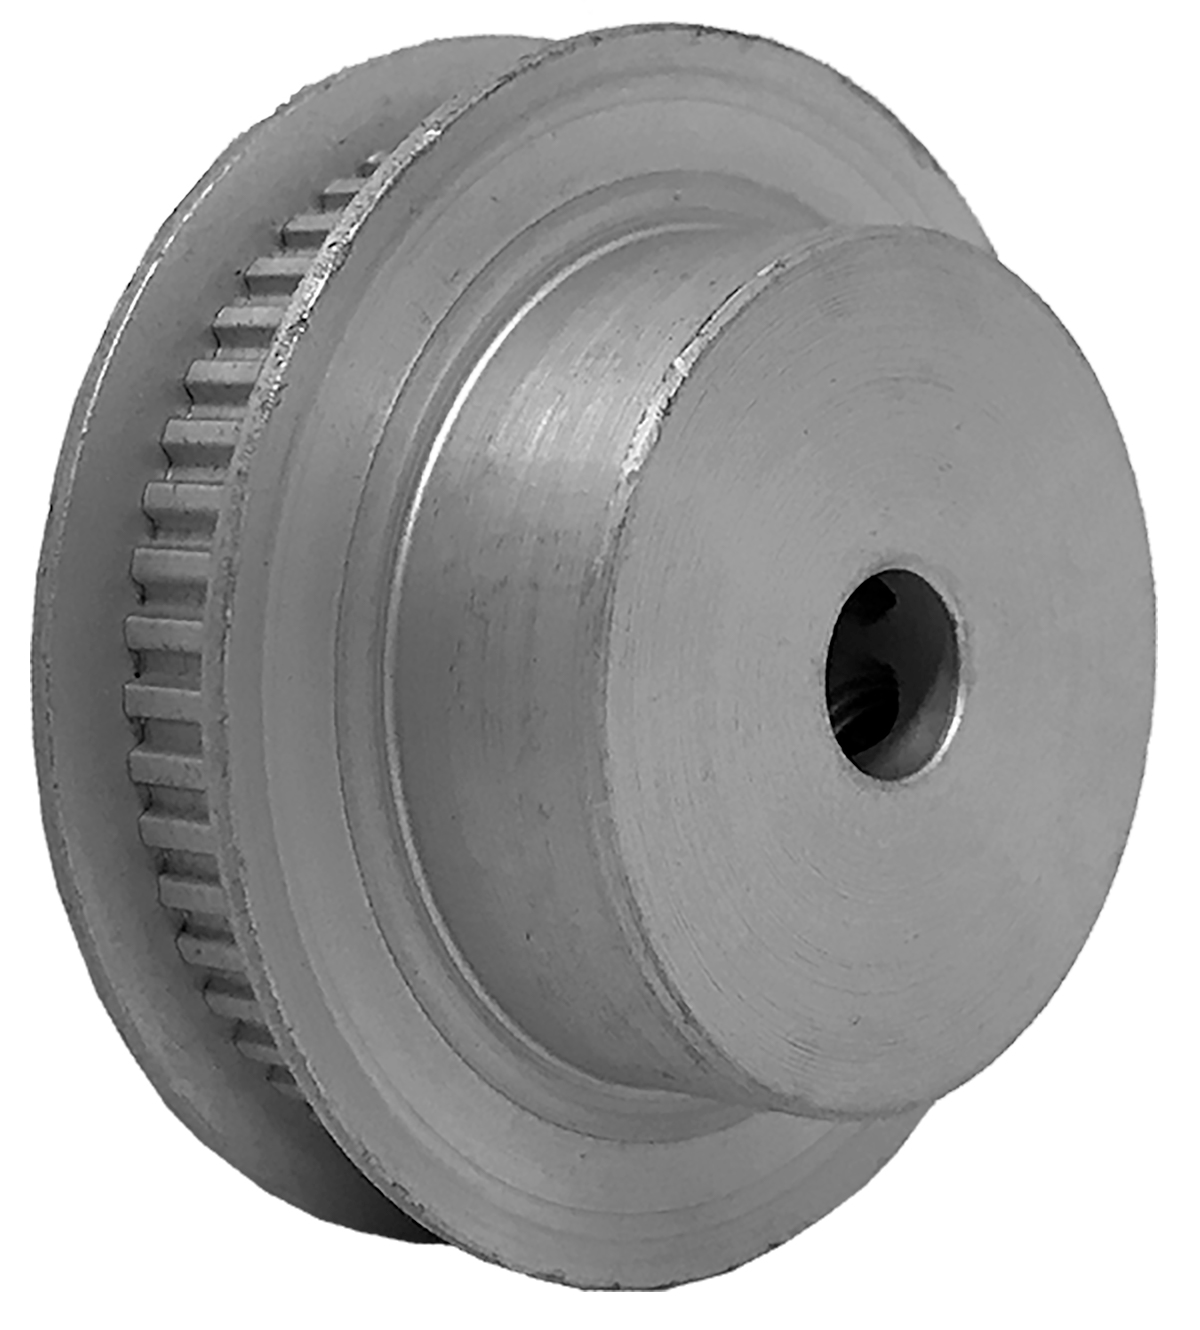 54LT187-6FA3 - Aluminum Imperial Pitch Pulleys